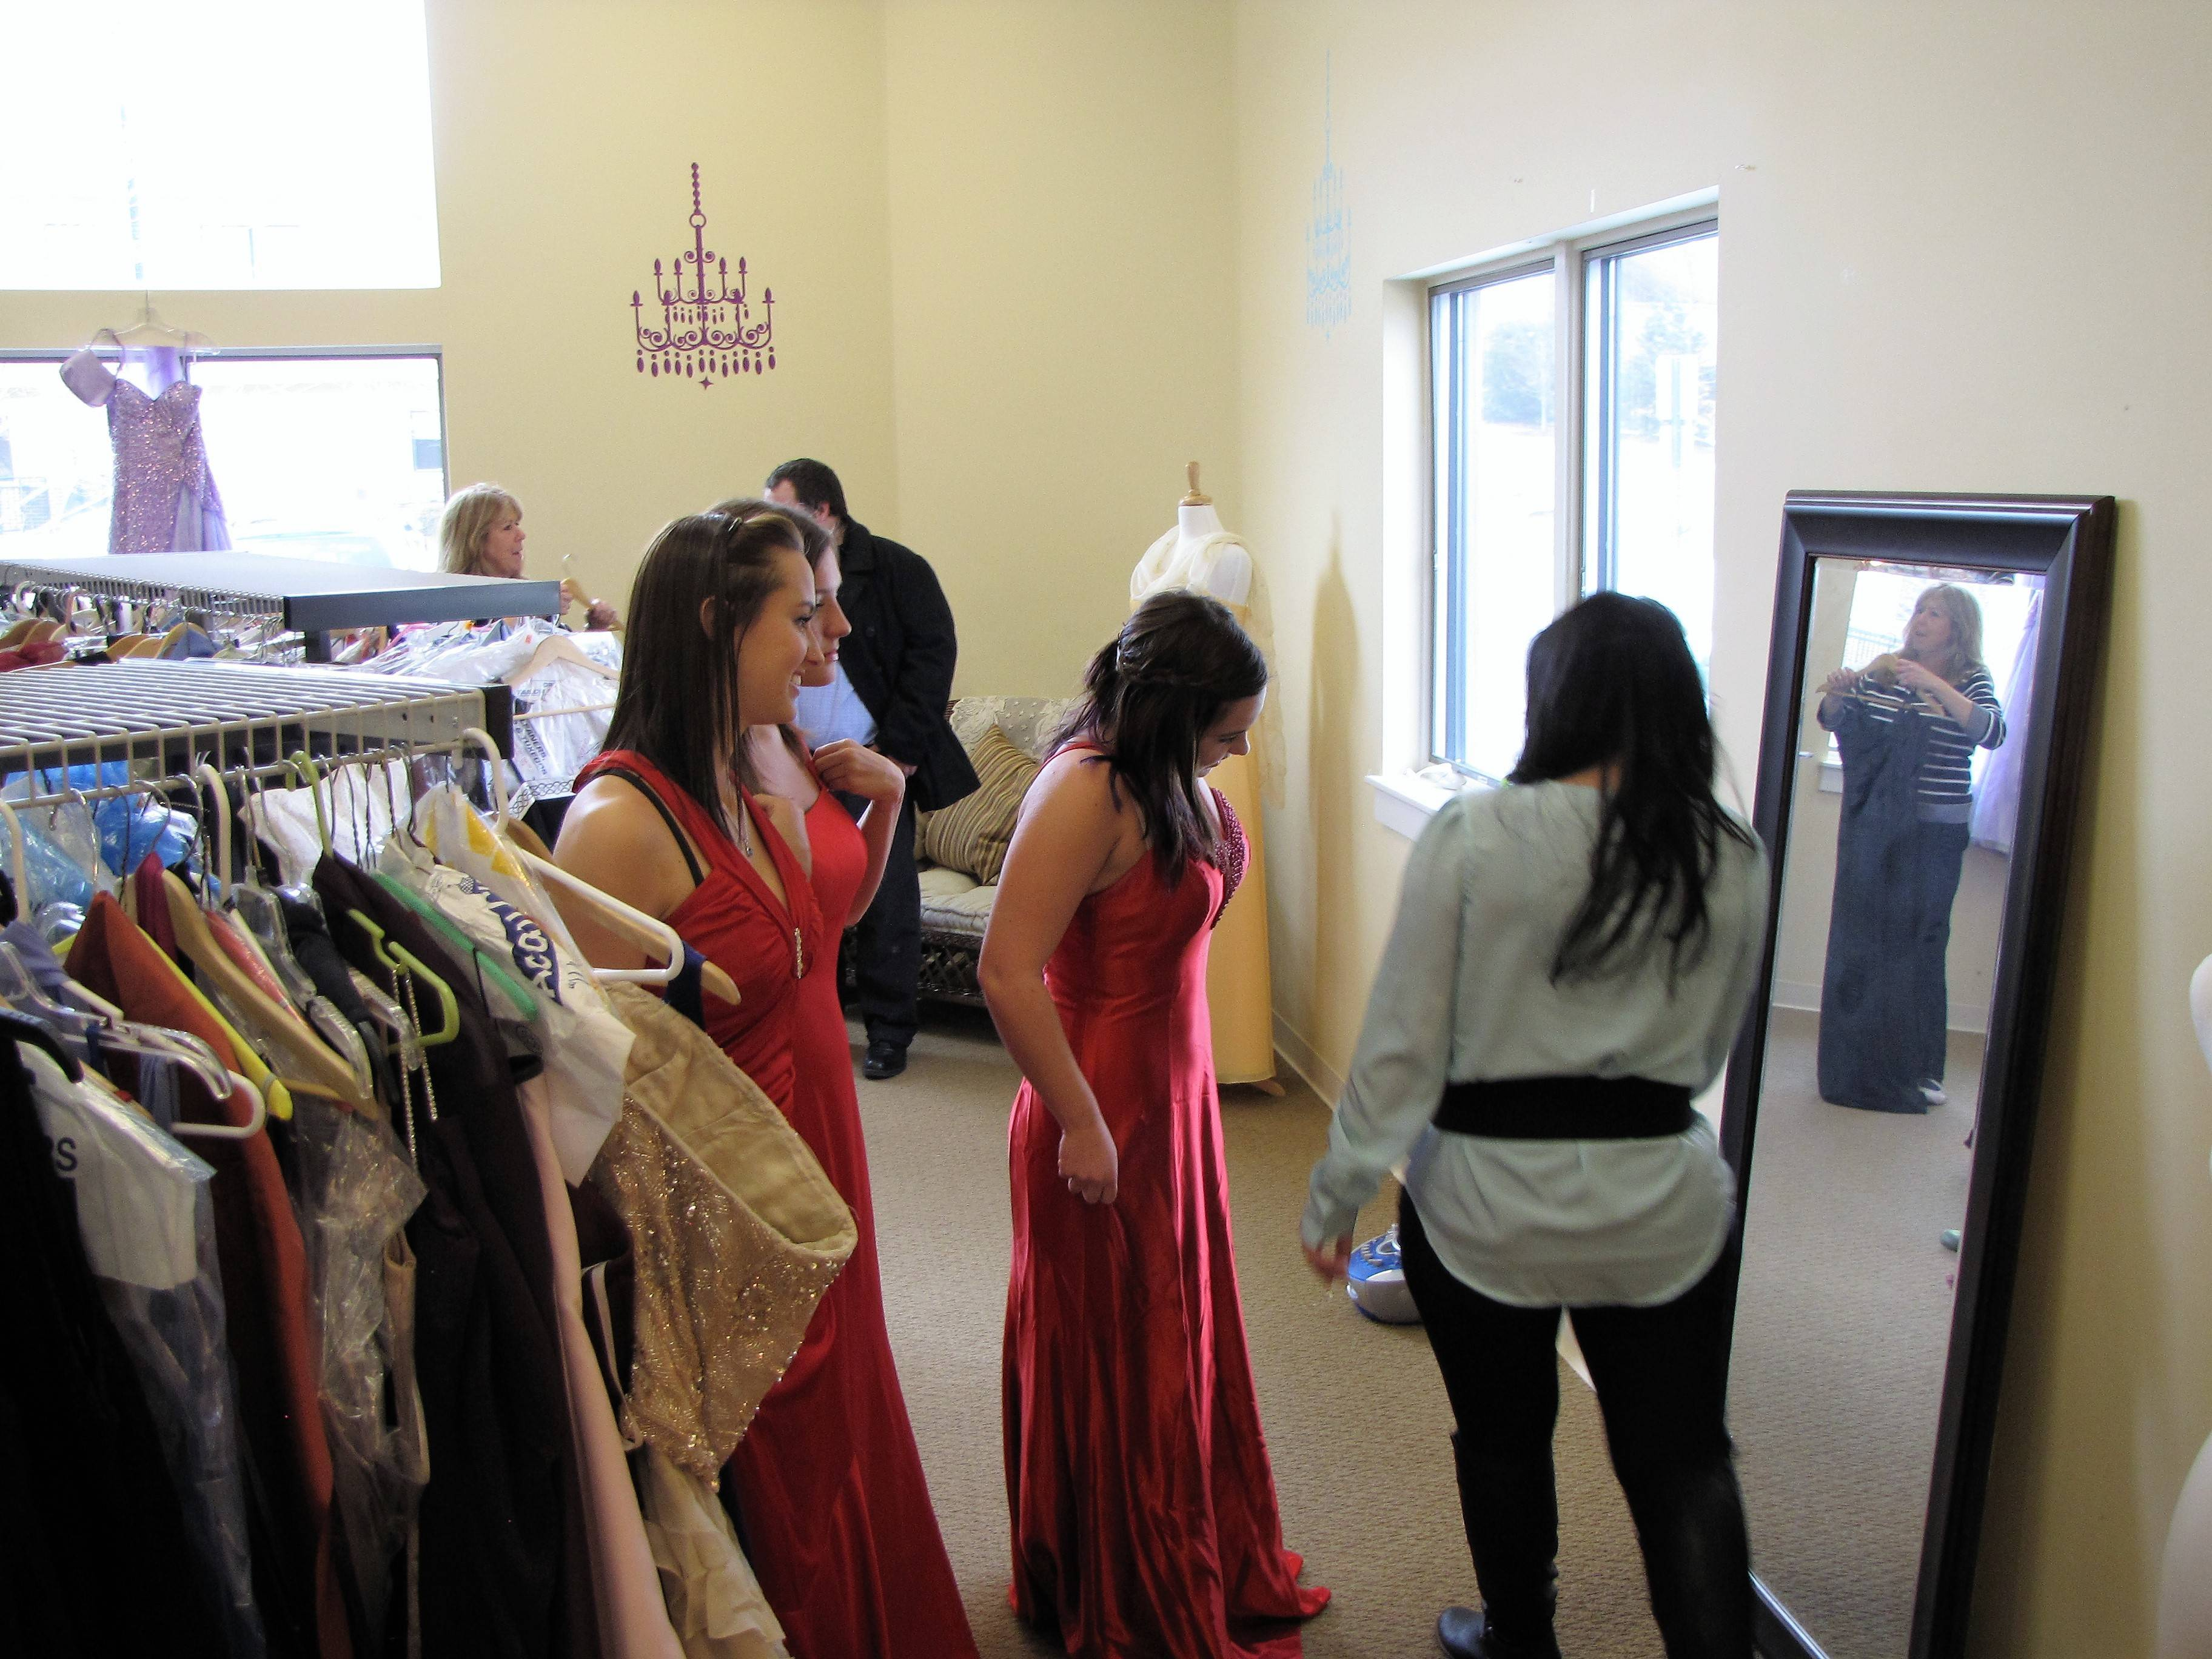 4081cdfa87189f4e0f88_Teen_girls_try_on_prom_dresses_at_the_Sister_to_Sister_Prom_Shop.JPG